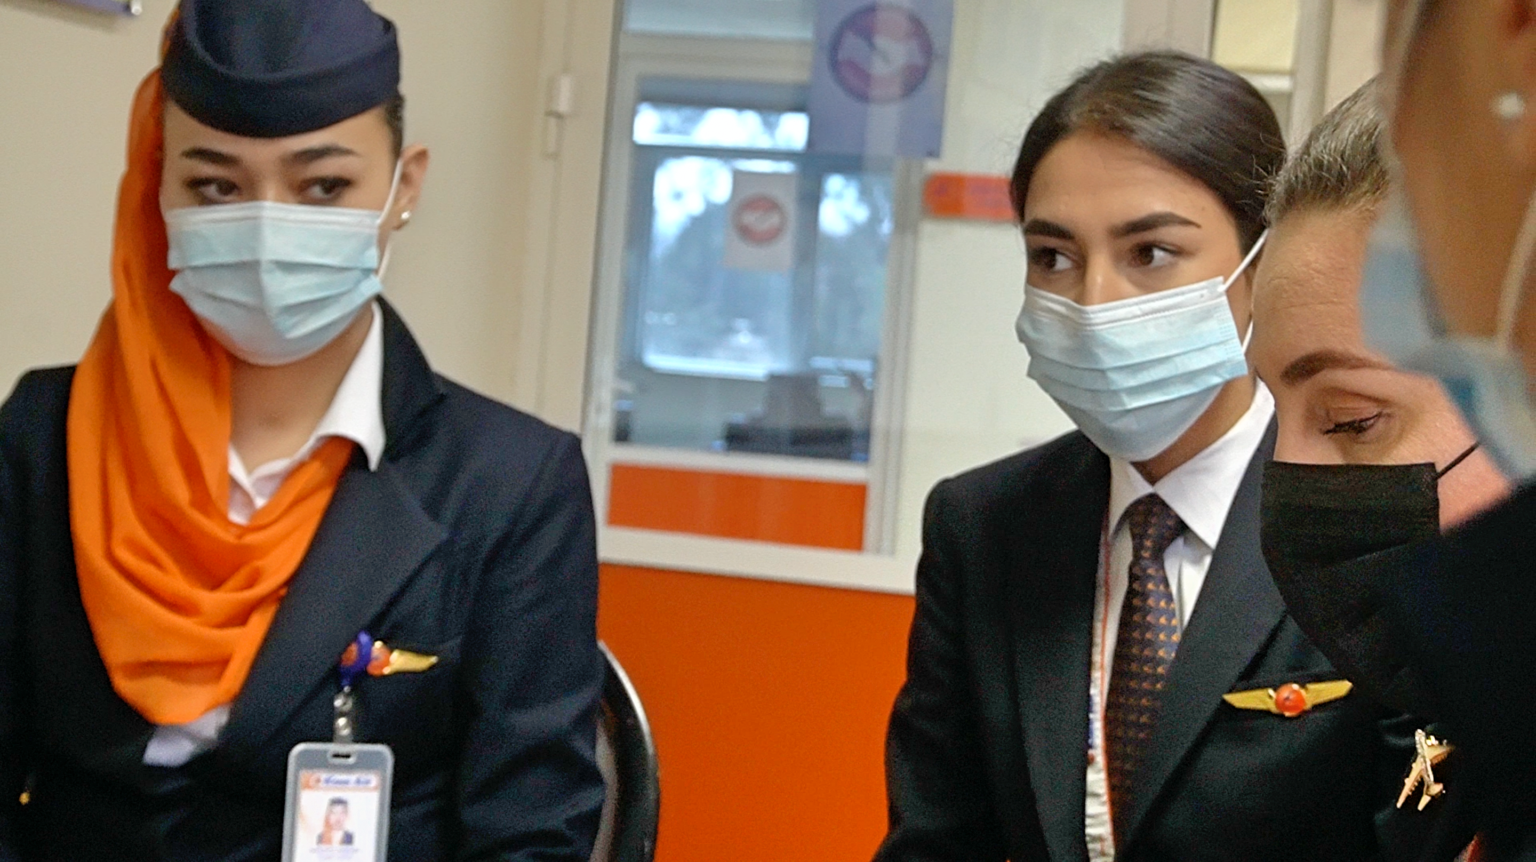 Kam Air all female flight. Female pilots of the flight wearing face masks ready to fly